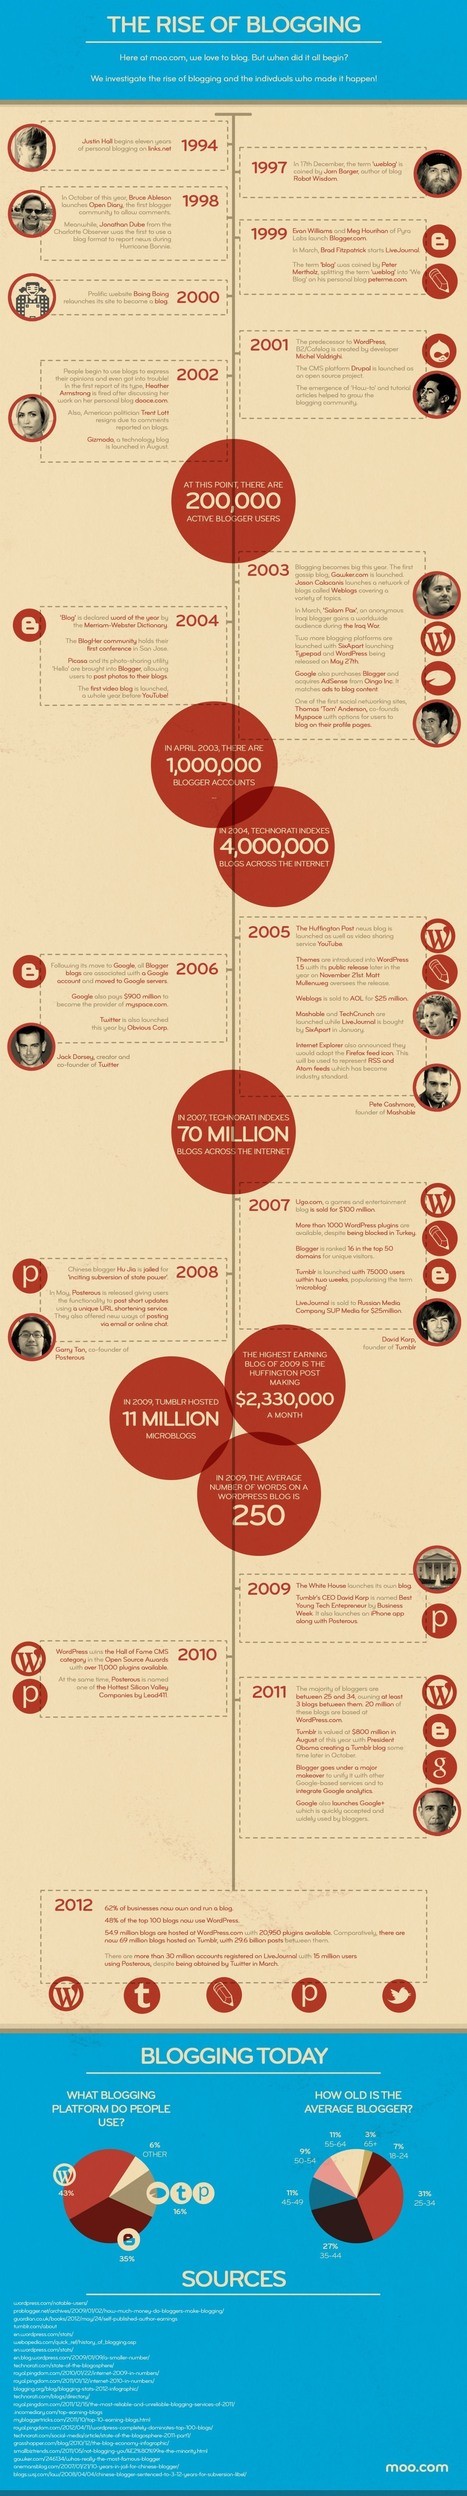 Infographic Thursday: The Rise of Blogging   Infographics   Scoop.it